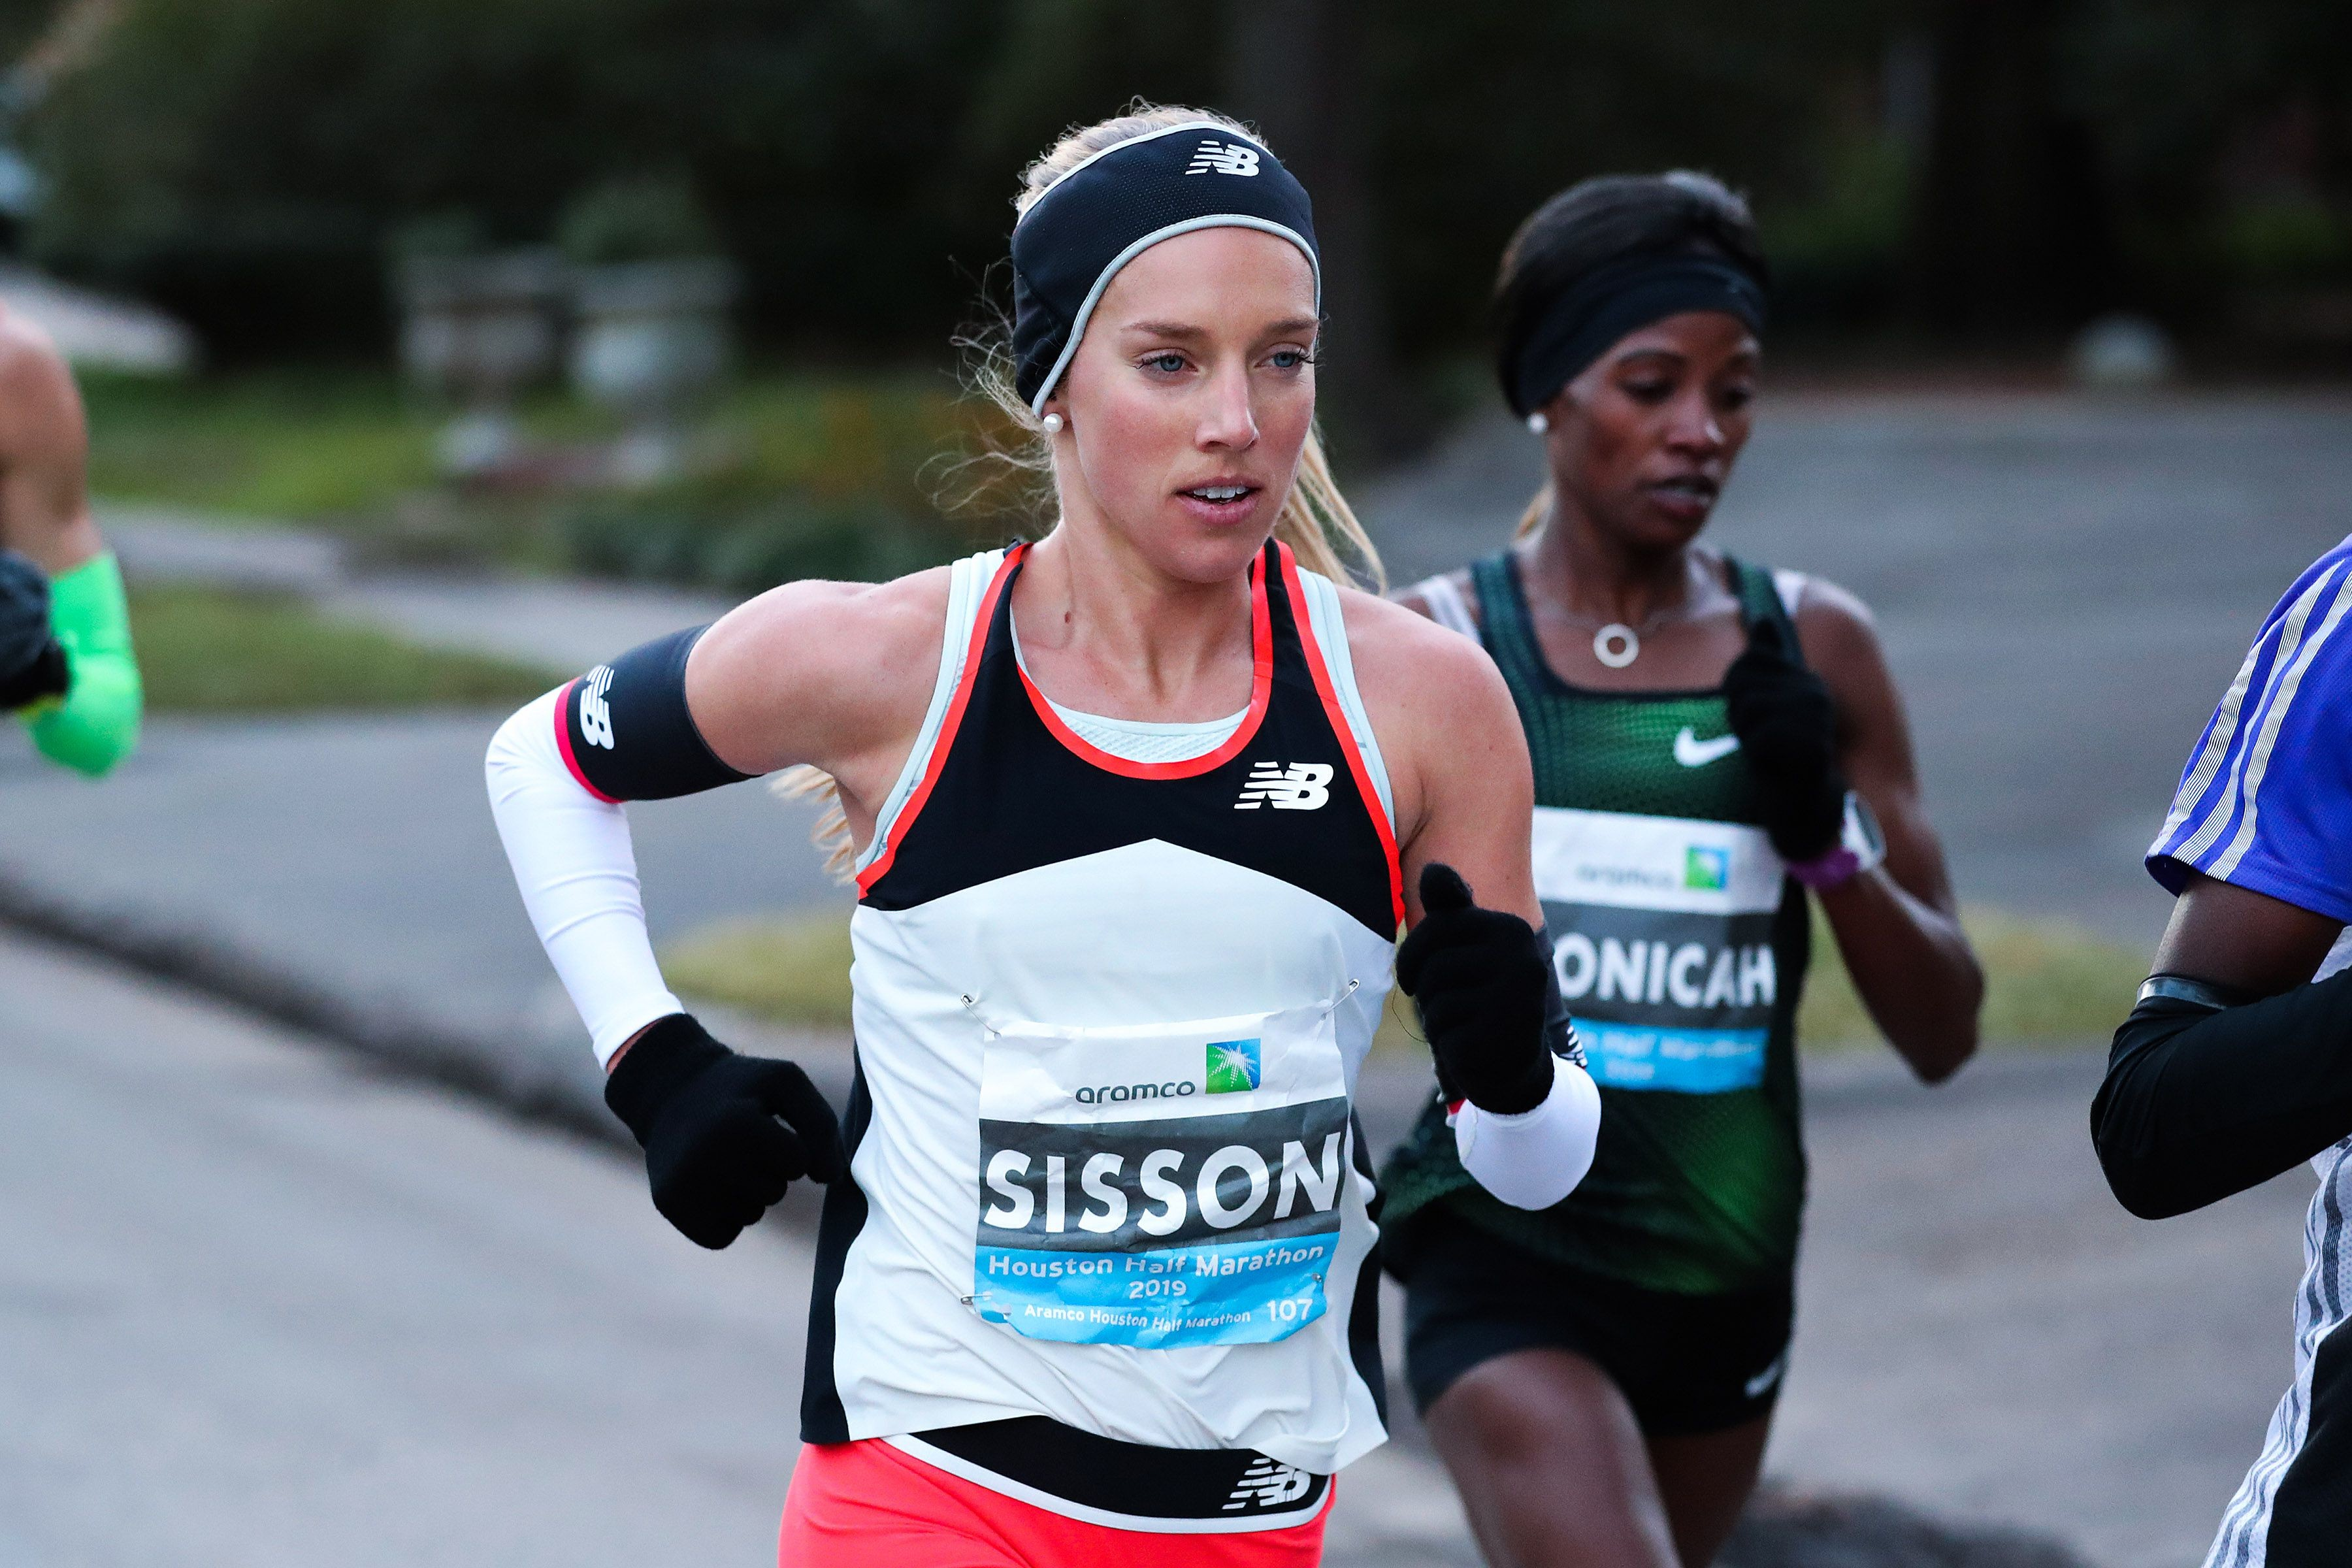 Emily Sisson is now the second fastest American woman half marathoner